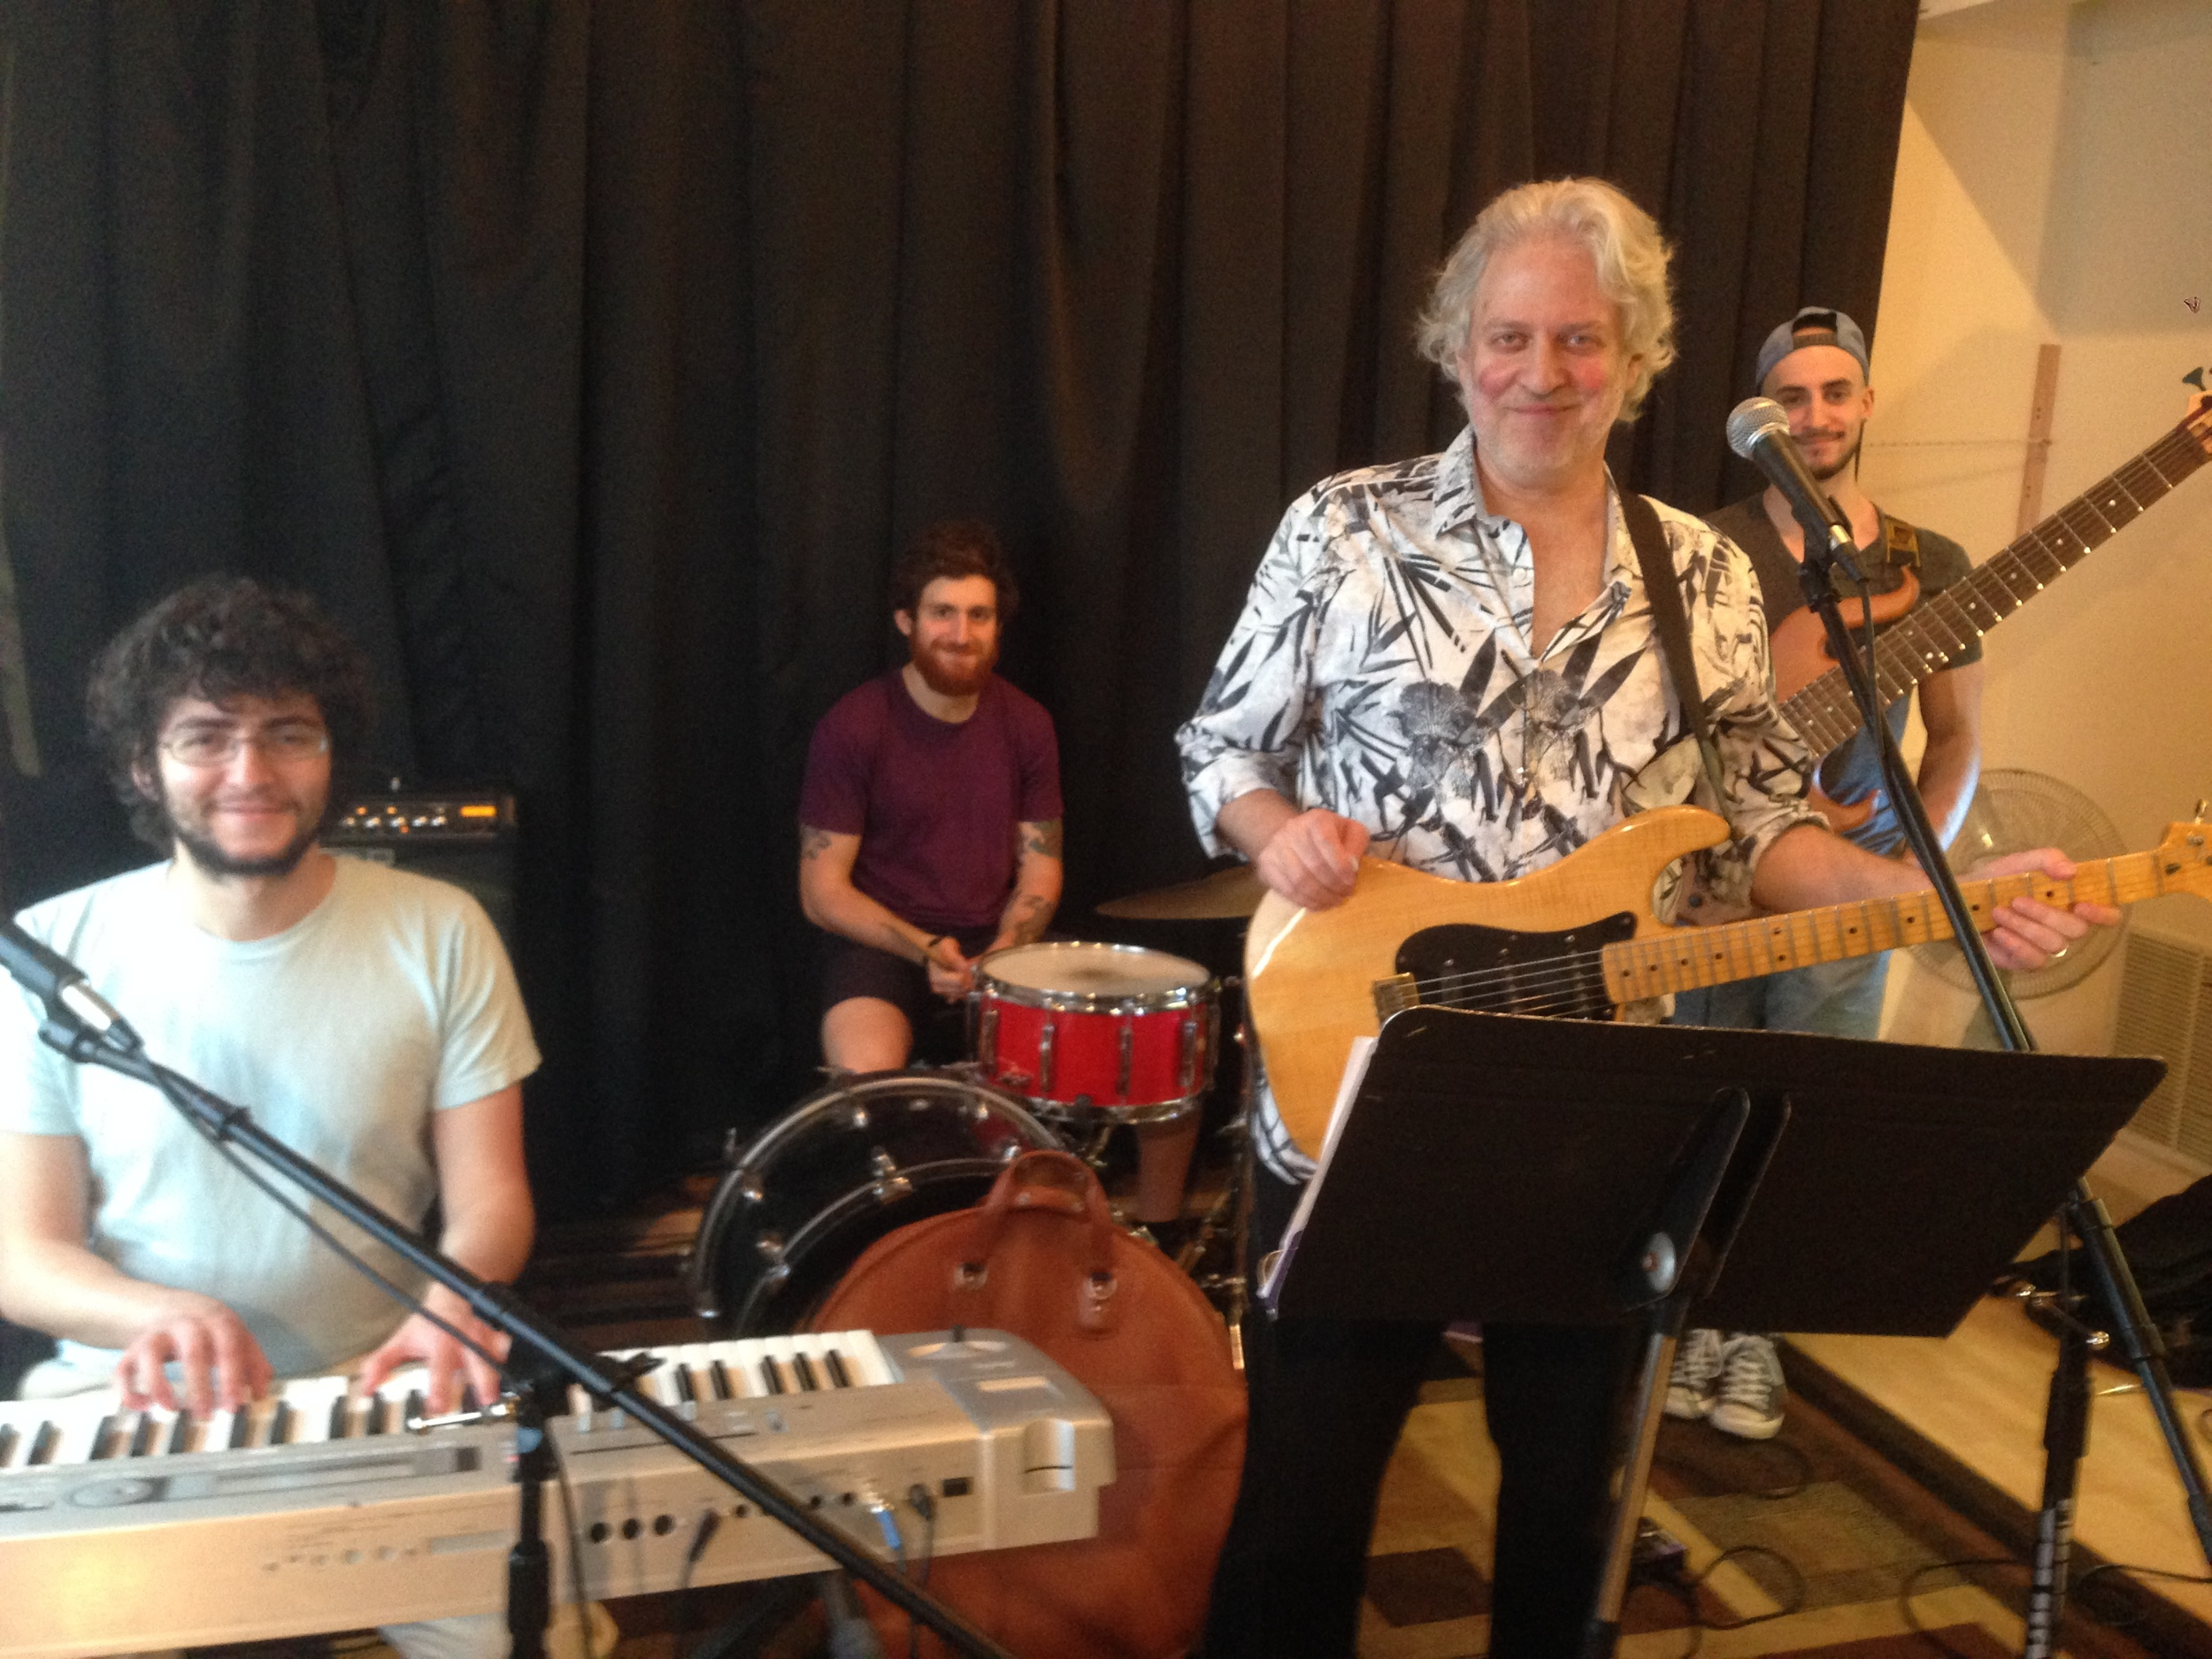 Dean Friedman and his band!